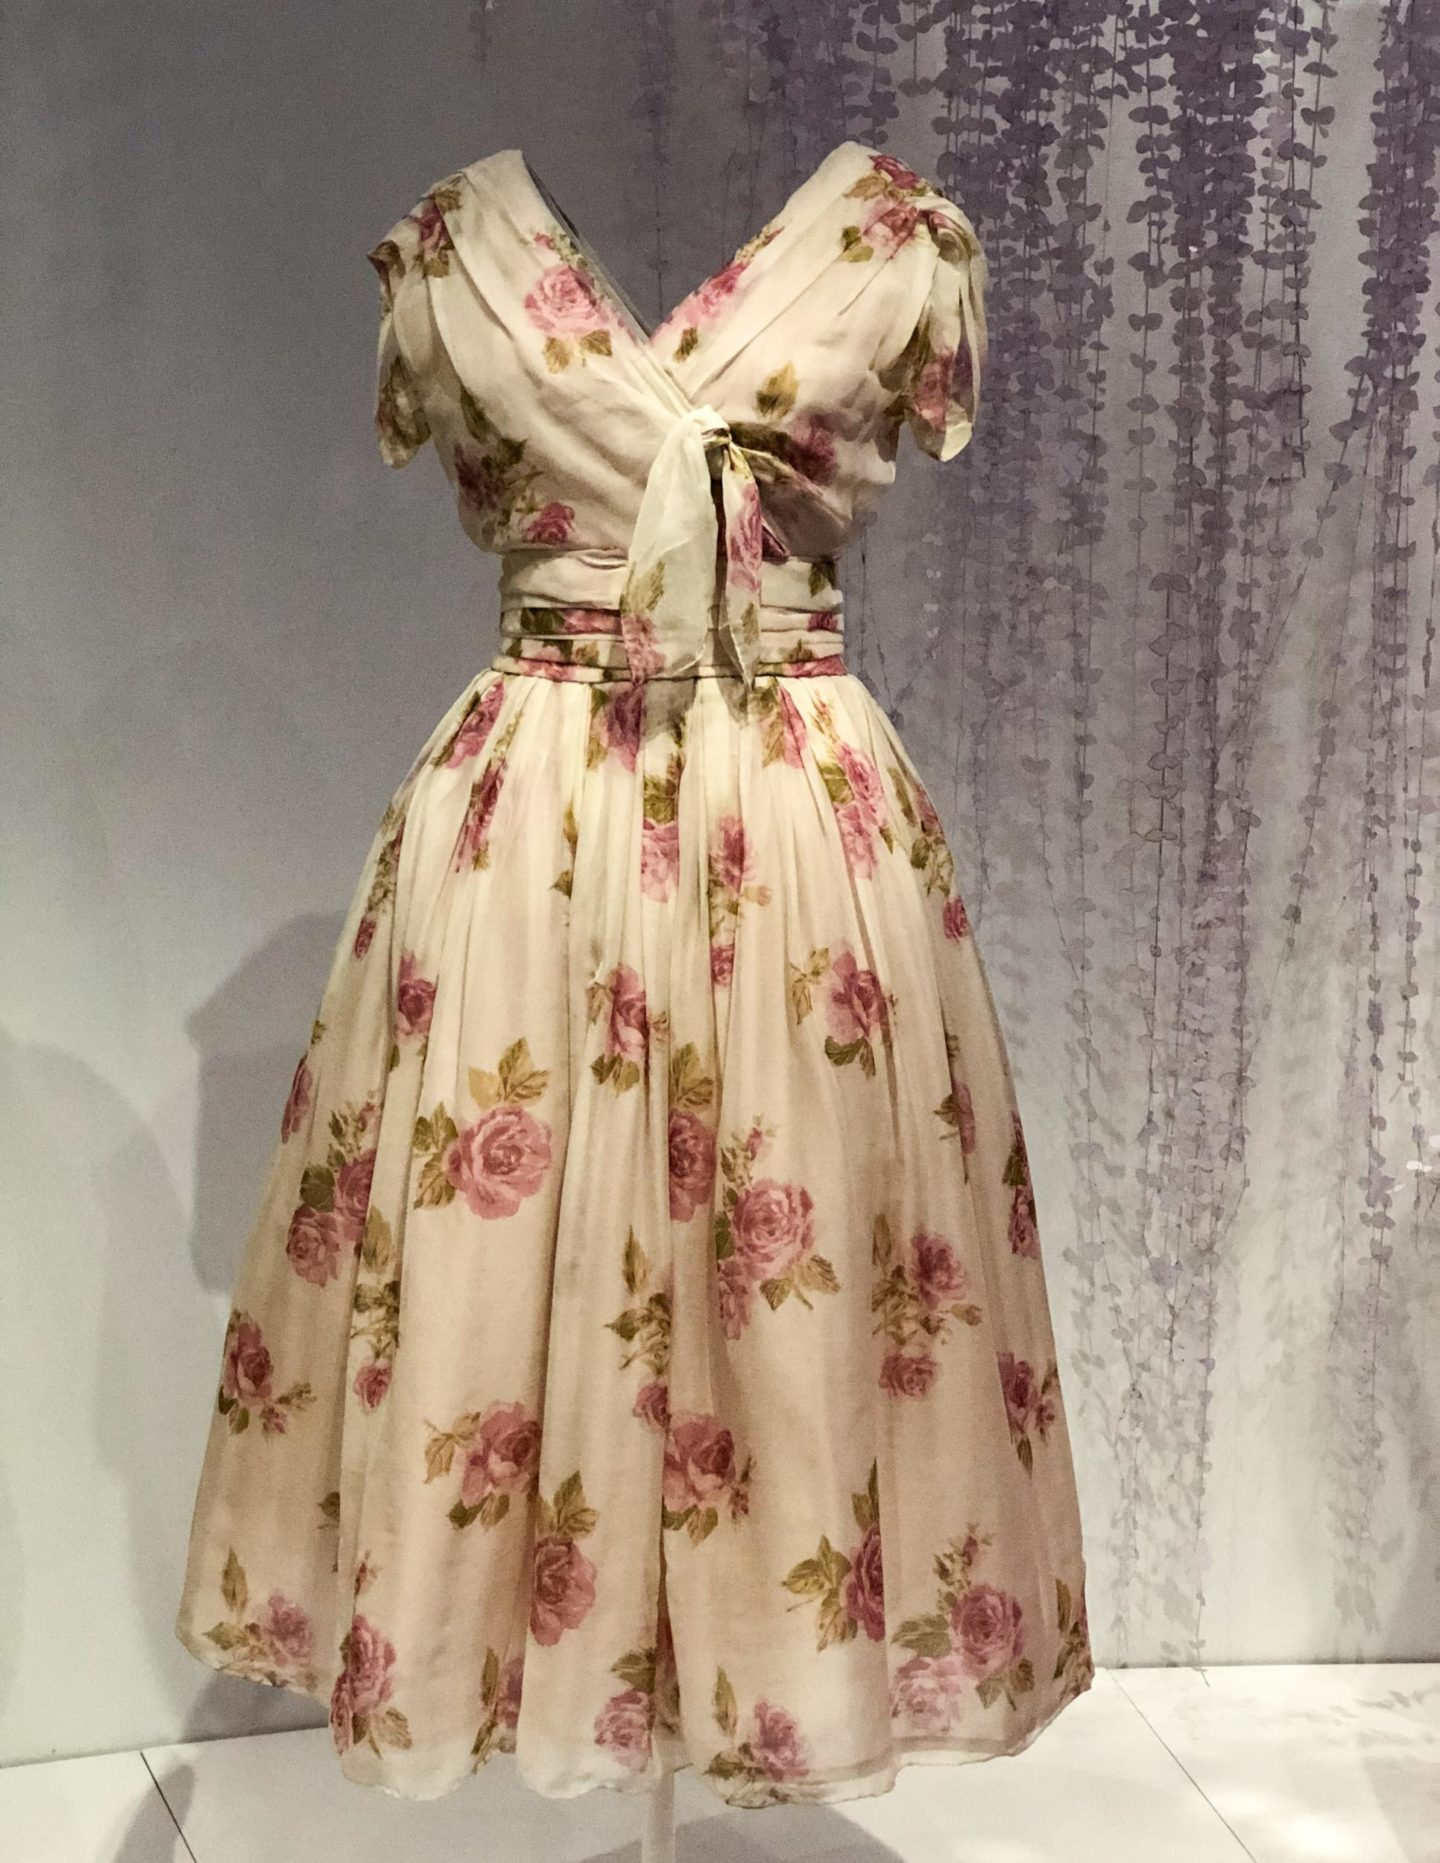 The Christian Dior exhibition at the V&A